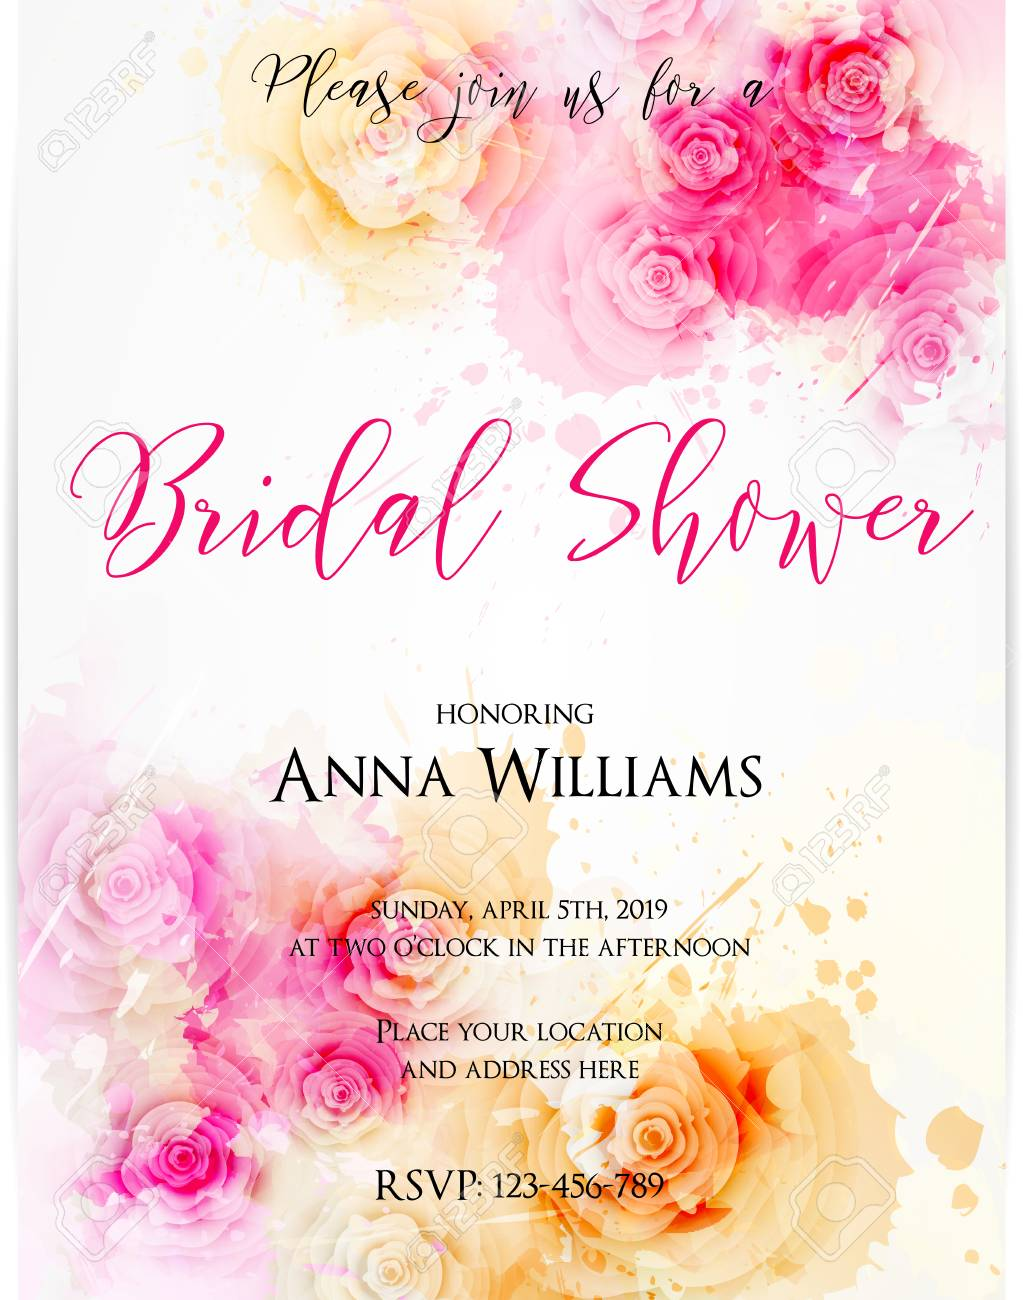 bridal shower invitation template with abstract roses on watercolor